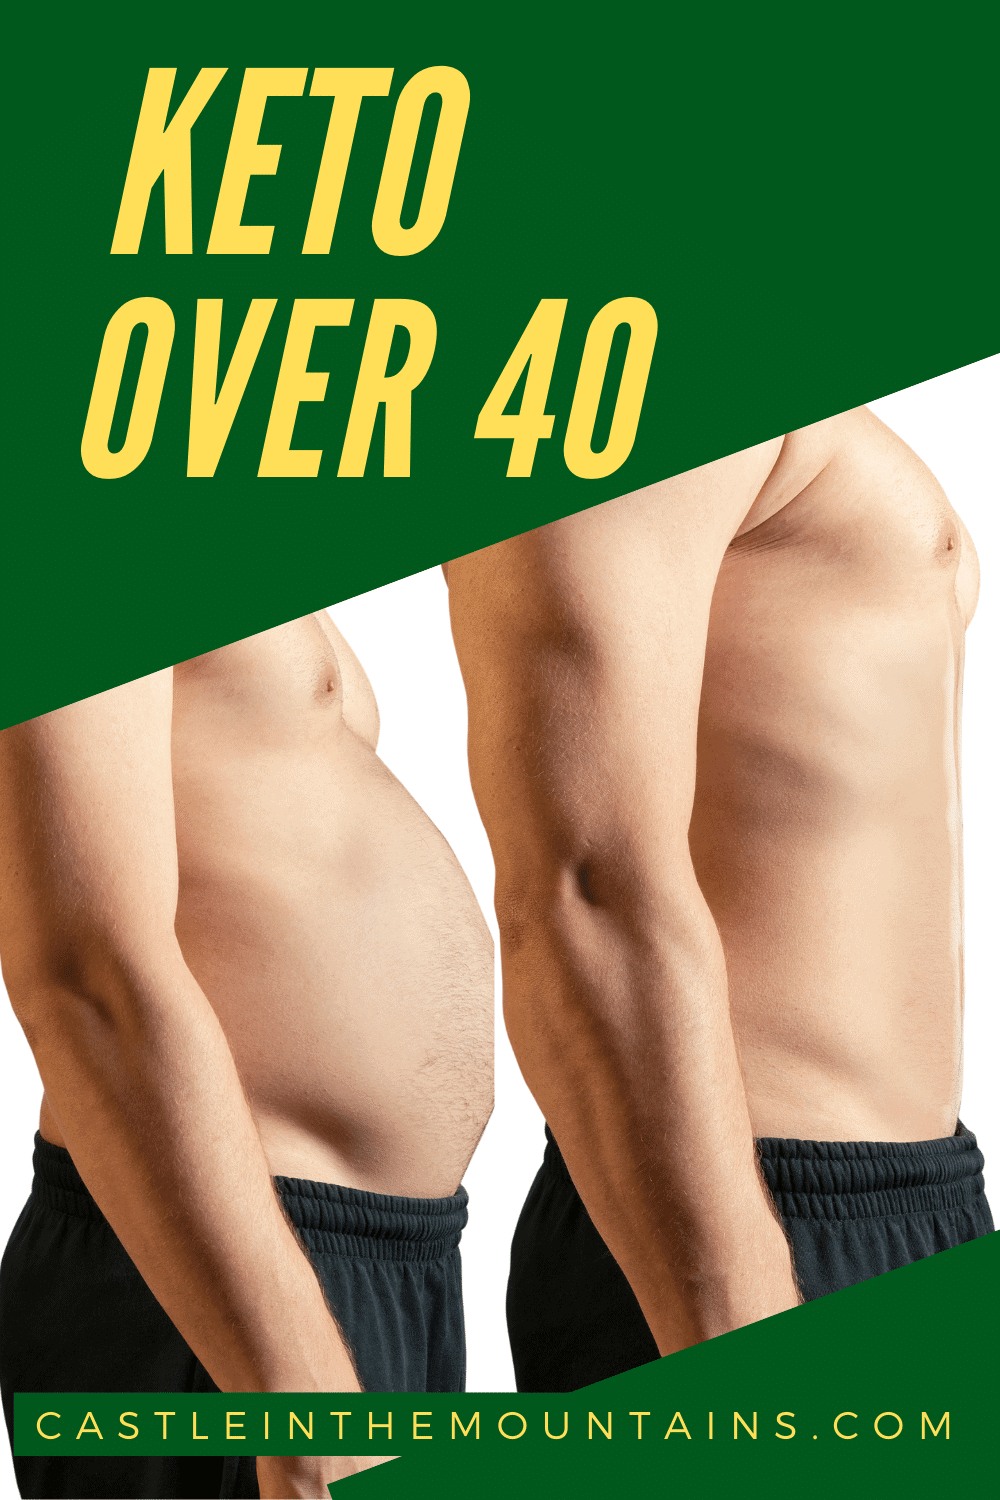 10 Tips for Keto when You are Over 40